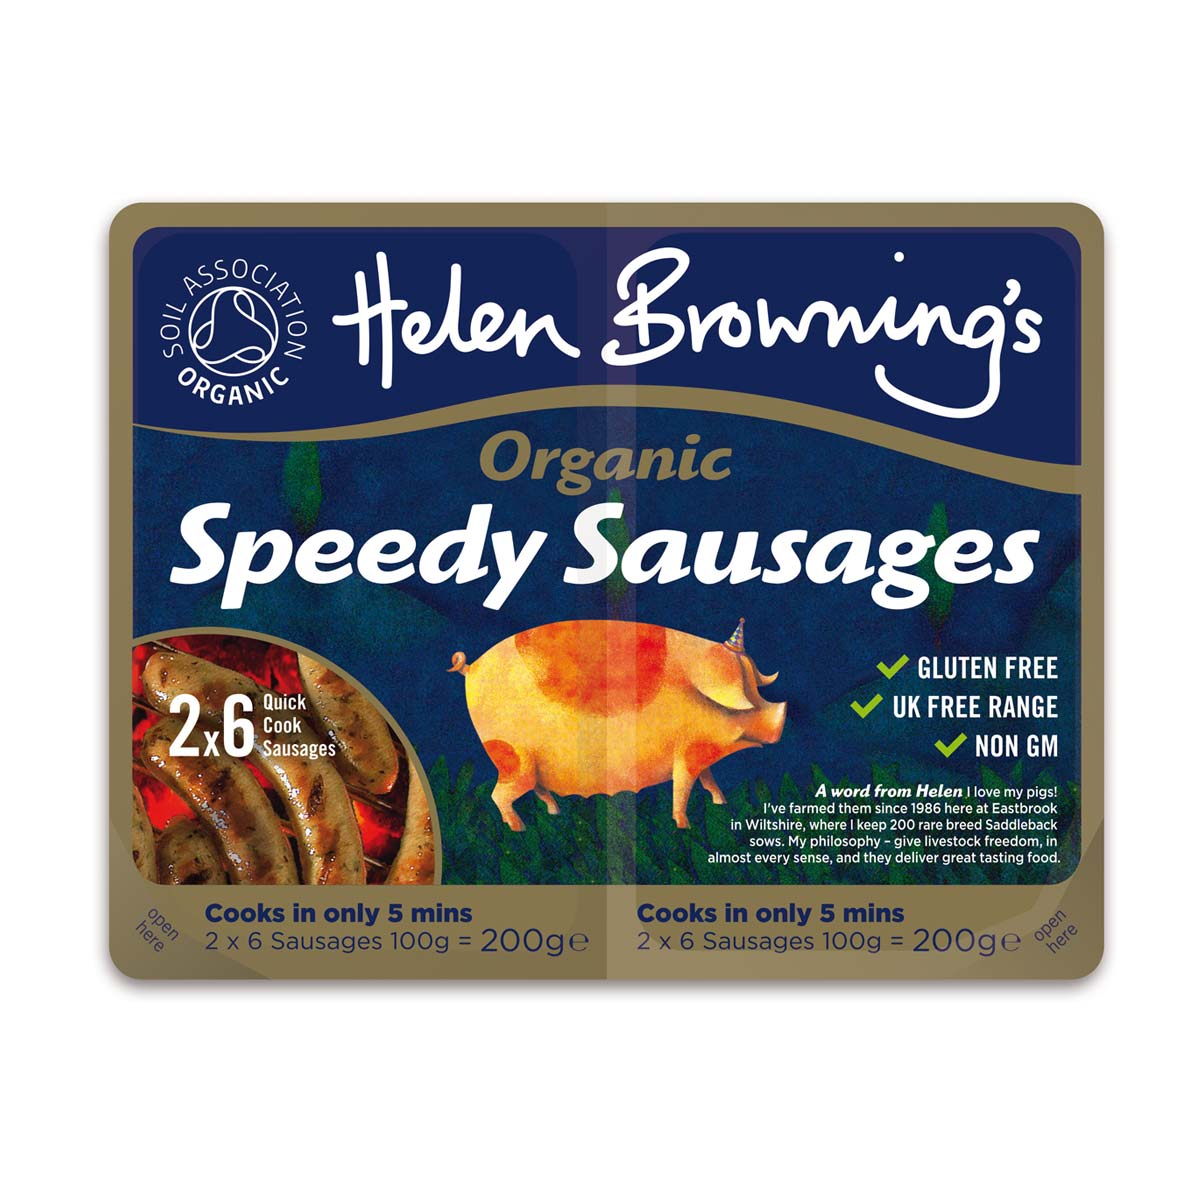 Helen Browning's Organic Speedy Sausages pack design